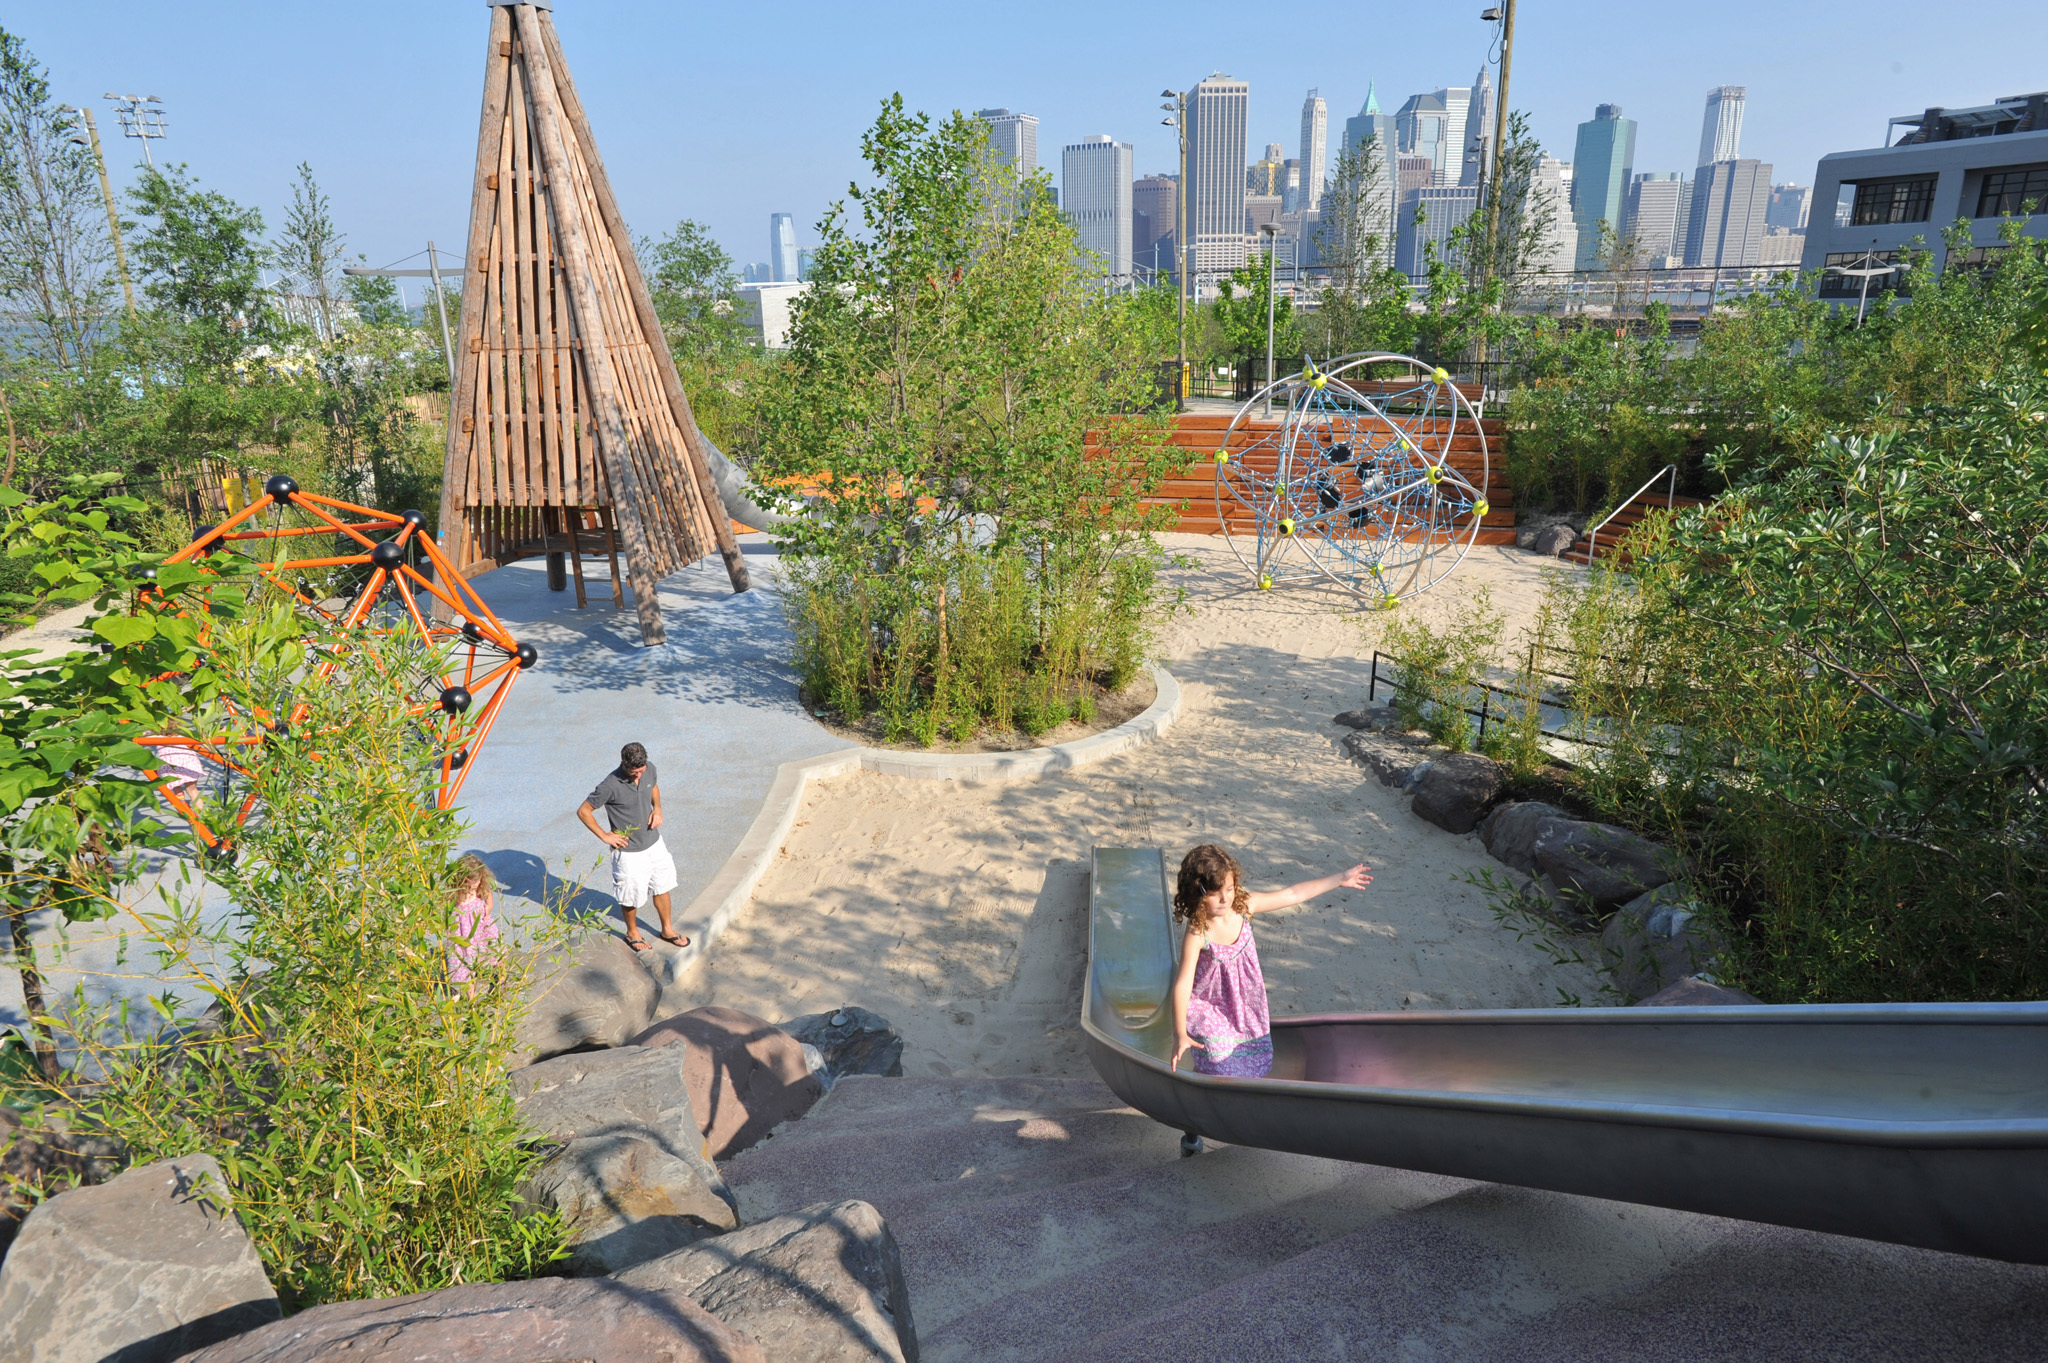 Explore Brooklyn Bridge Park